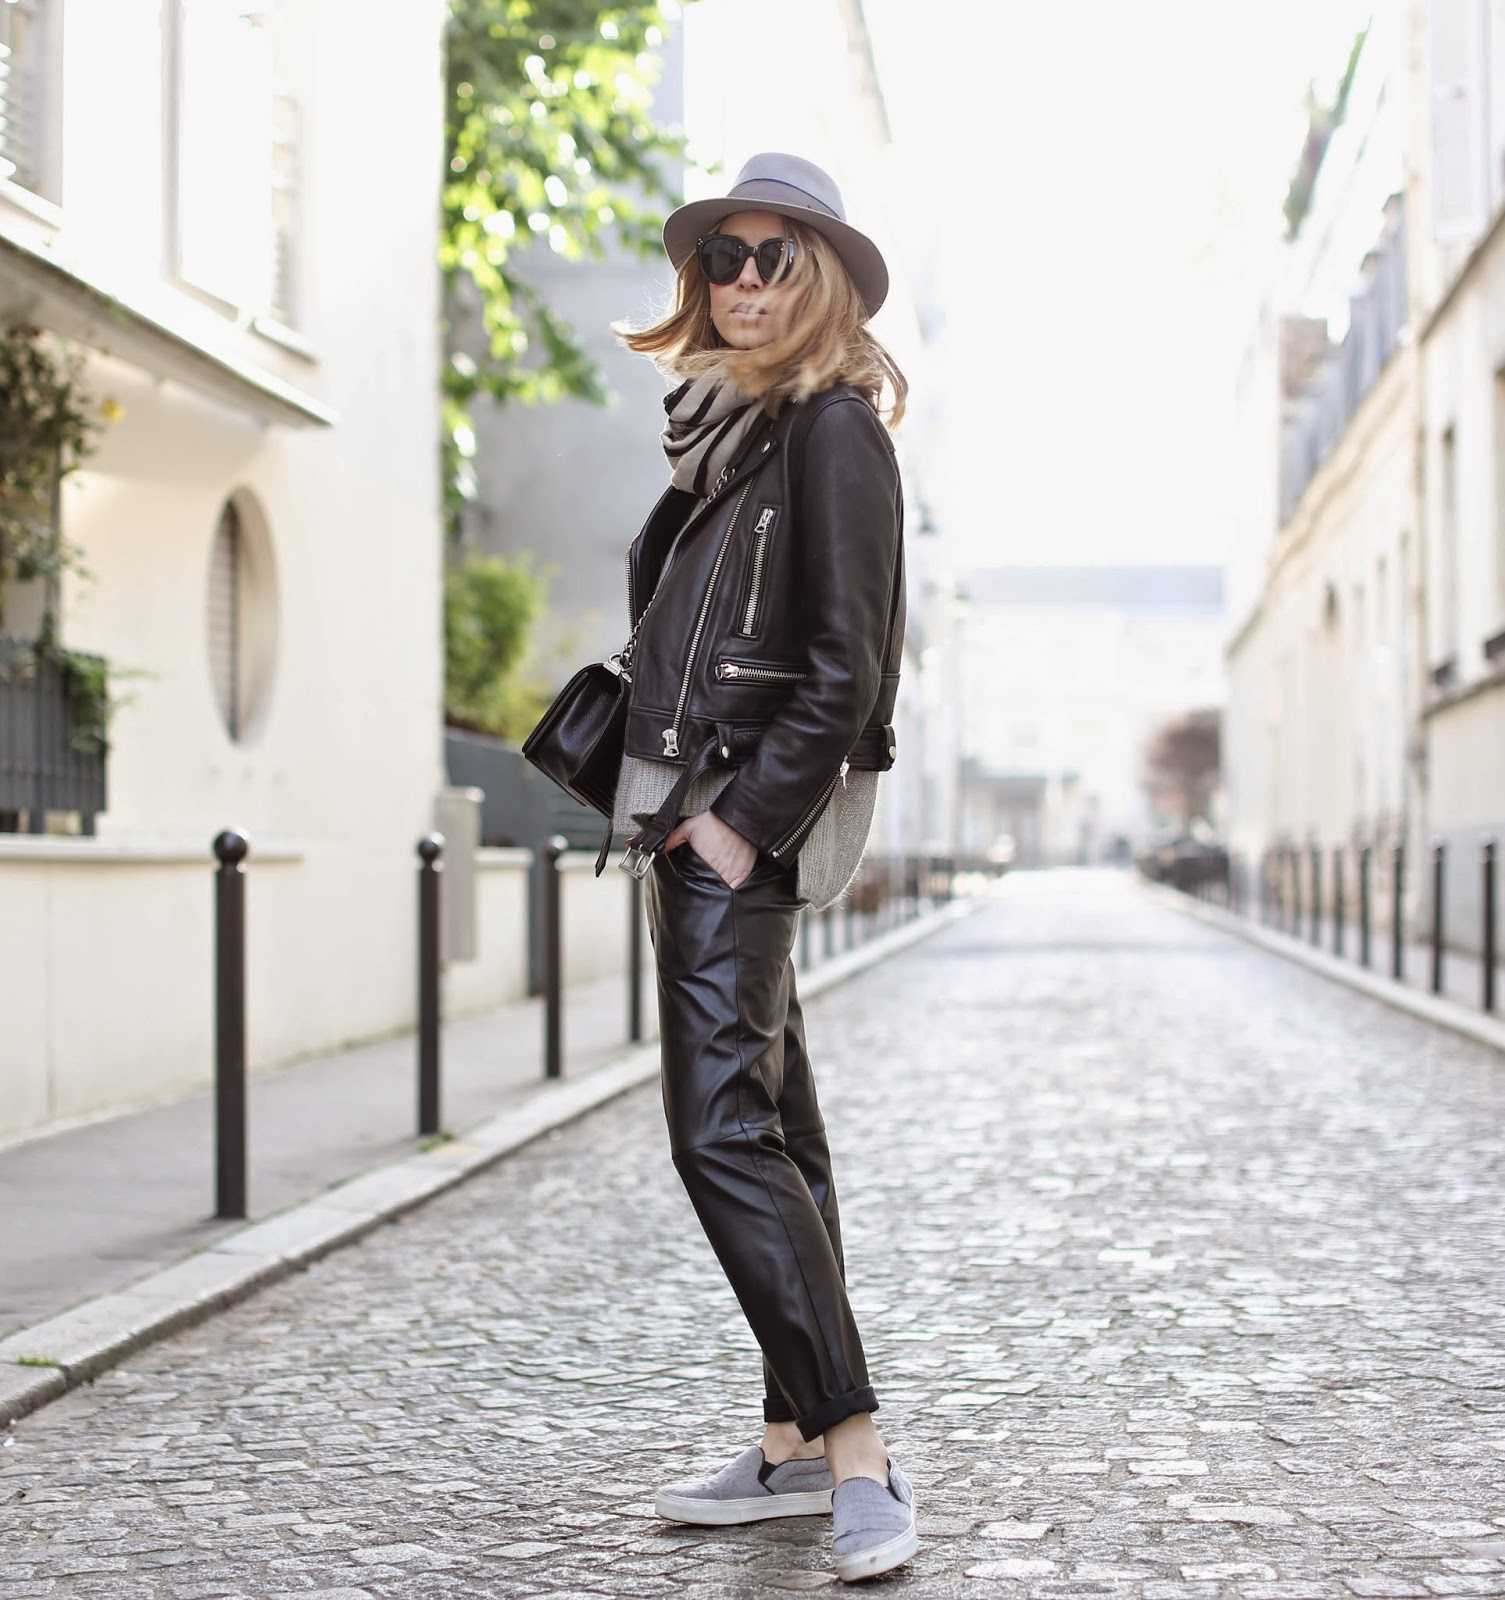 Caroline Louis is wearing a biker jacket from Acne, leather trousers from L'Art du Basic, grey scarf from Hermès and matching slip-ons from Céline and the hat is from Maison Michel